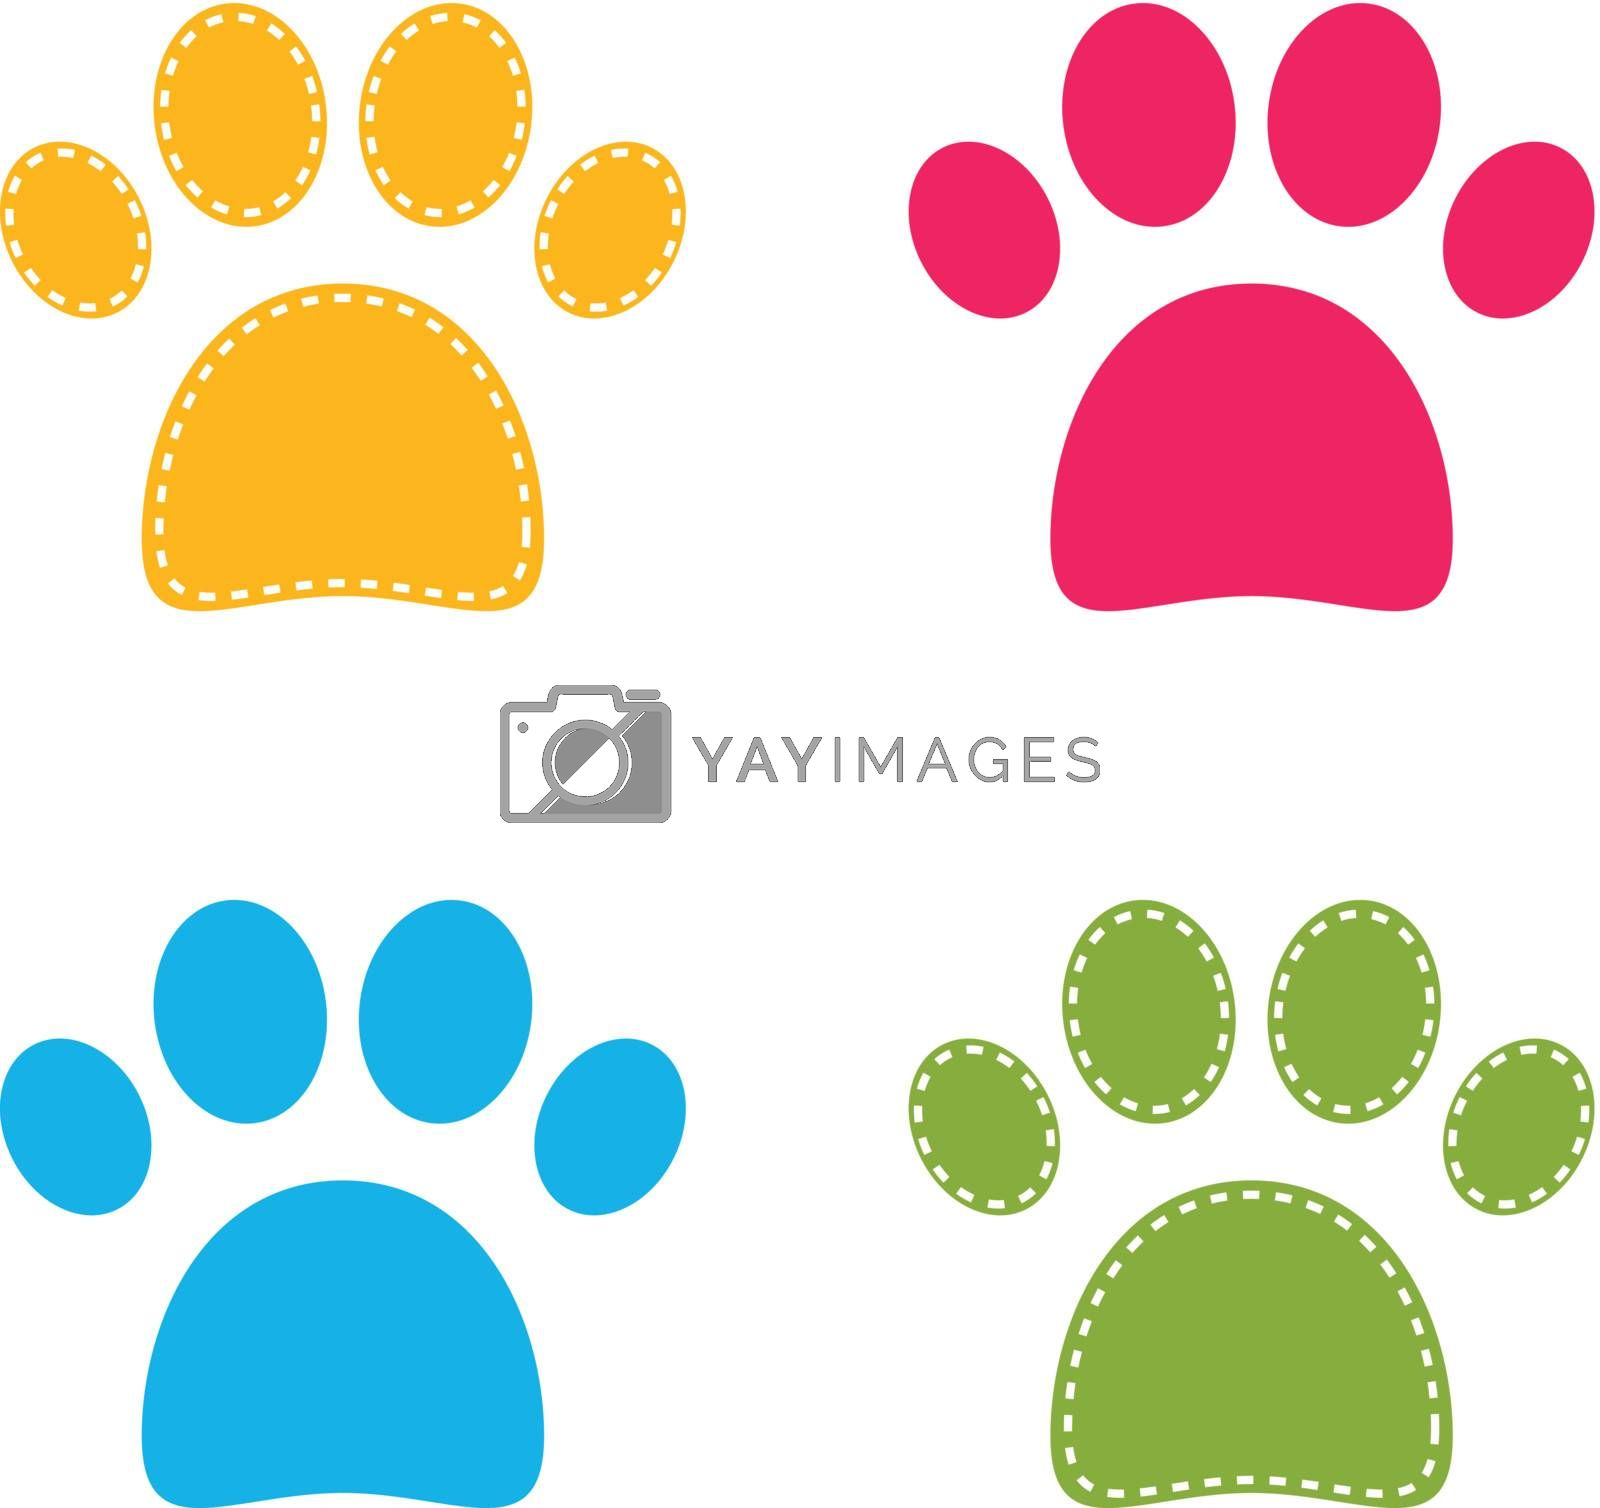 Royalty free image of Cute colorful Doggie Paws isolated on white by Lordalea